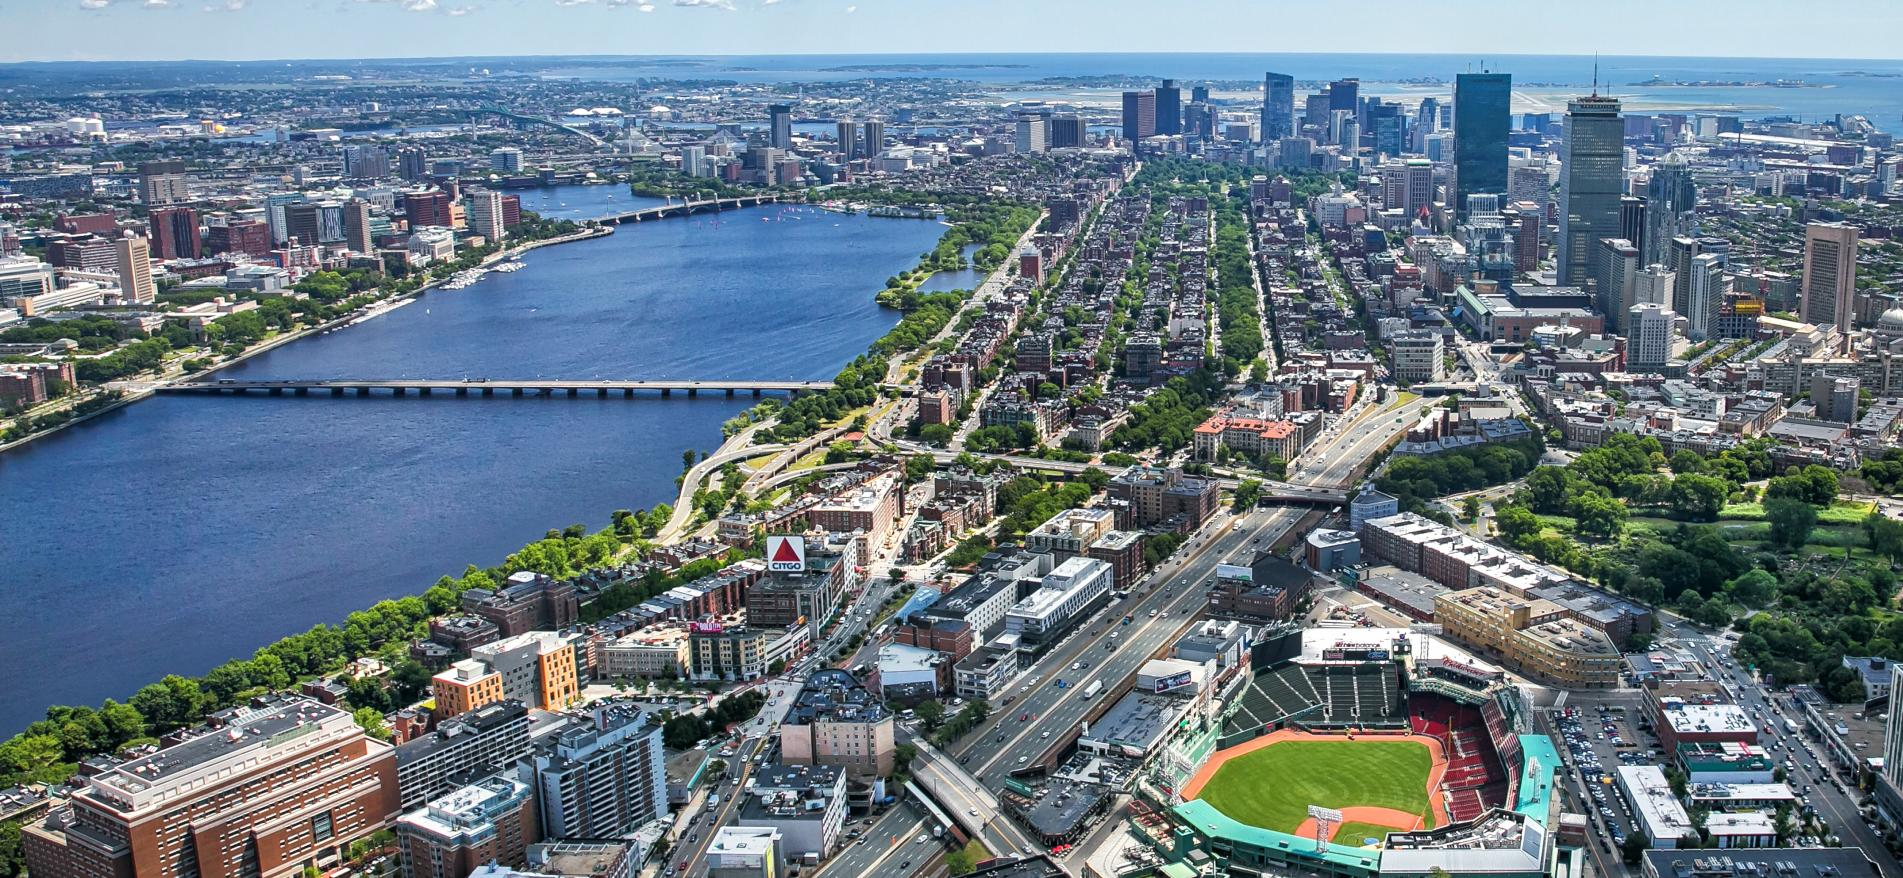 Boston For 99 With Primera Air Primera Air Low Cost